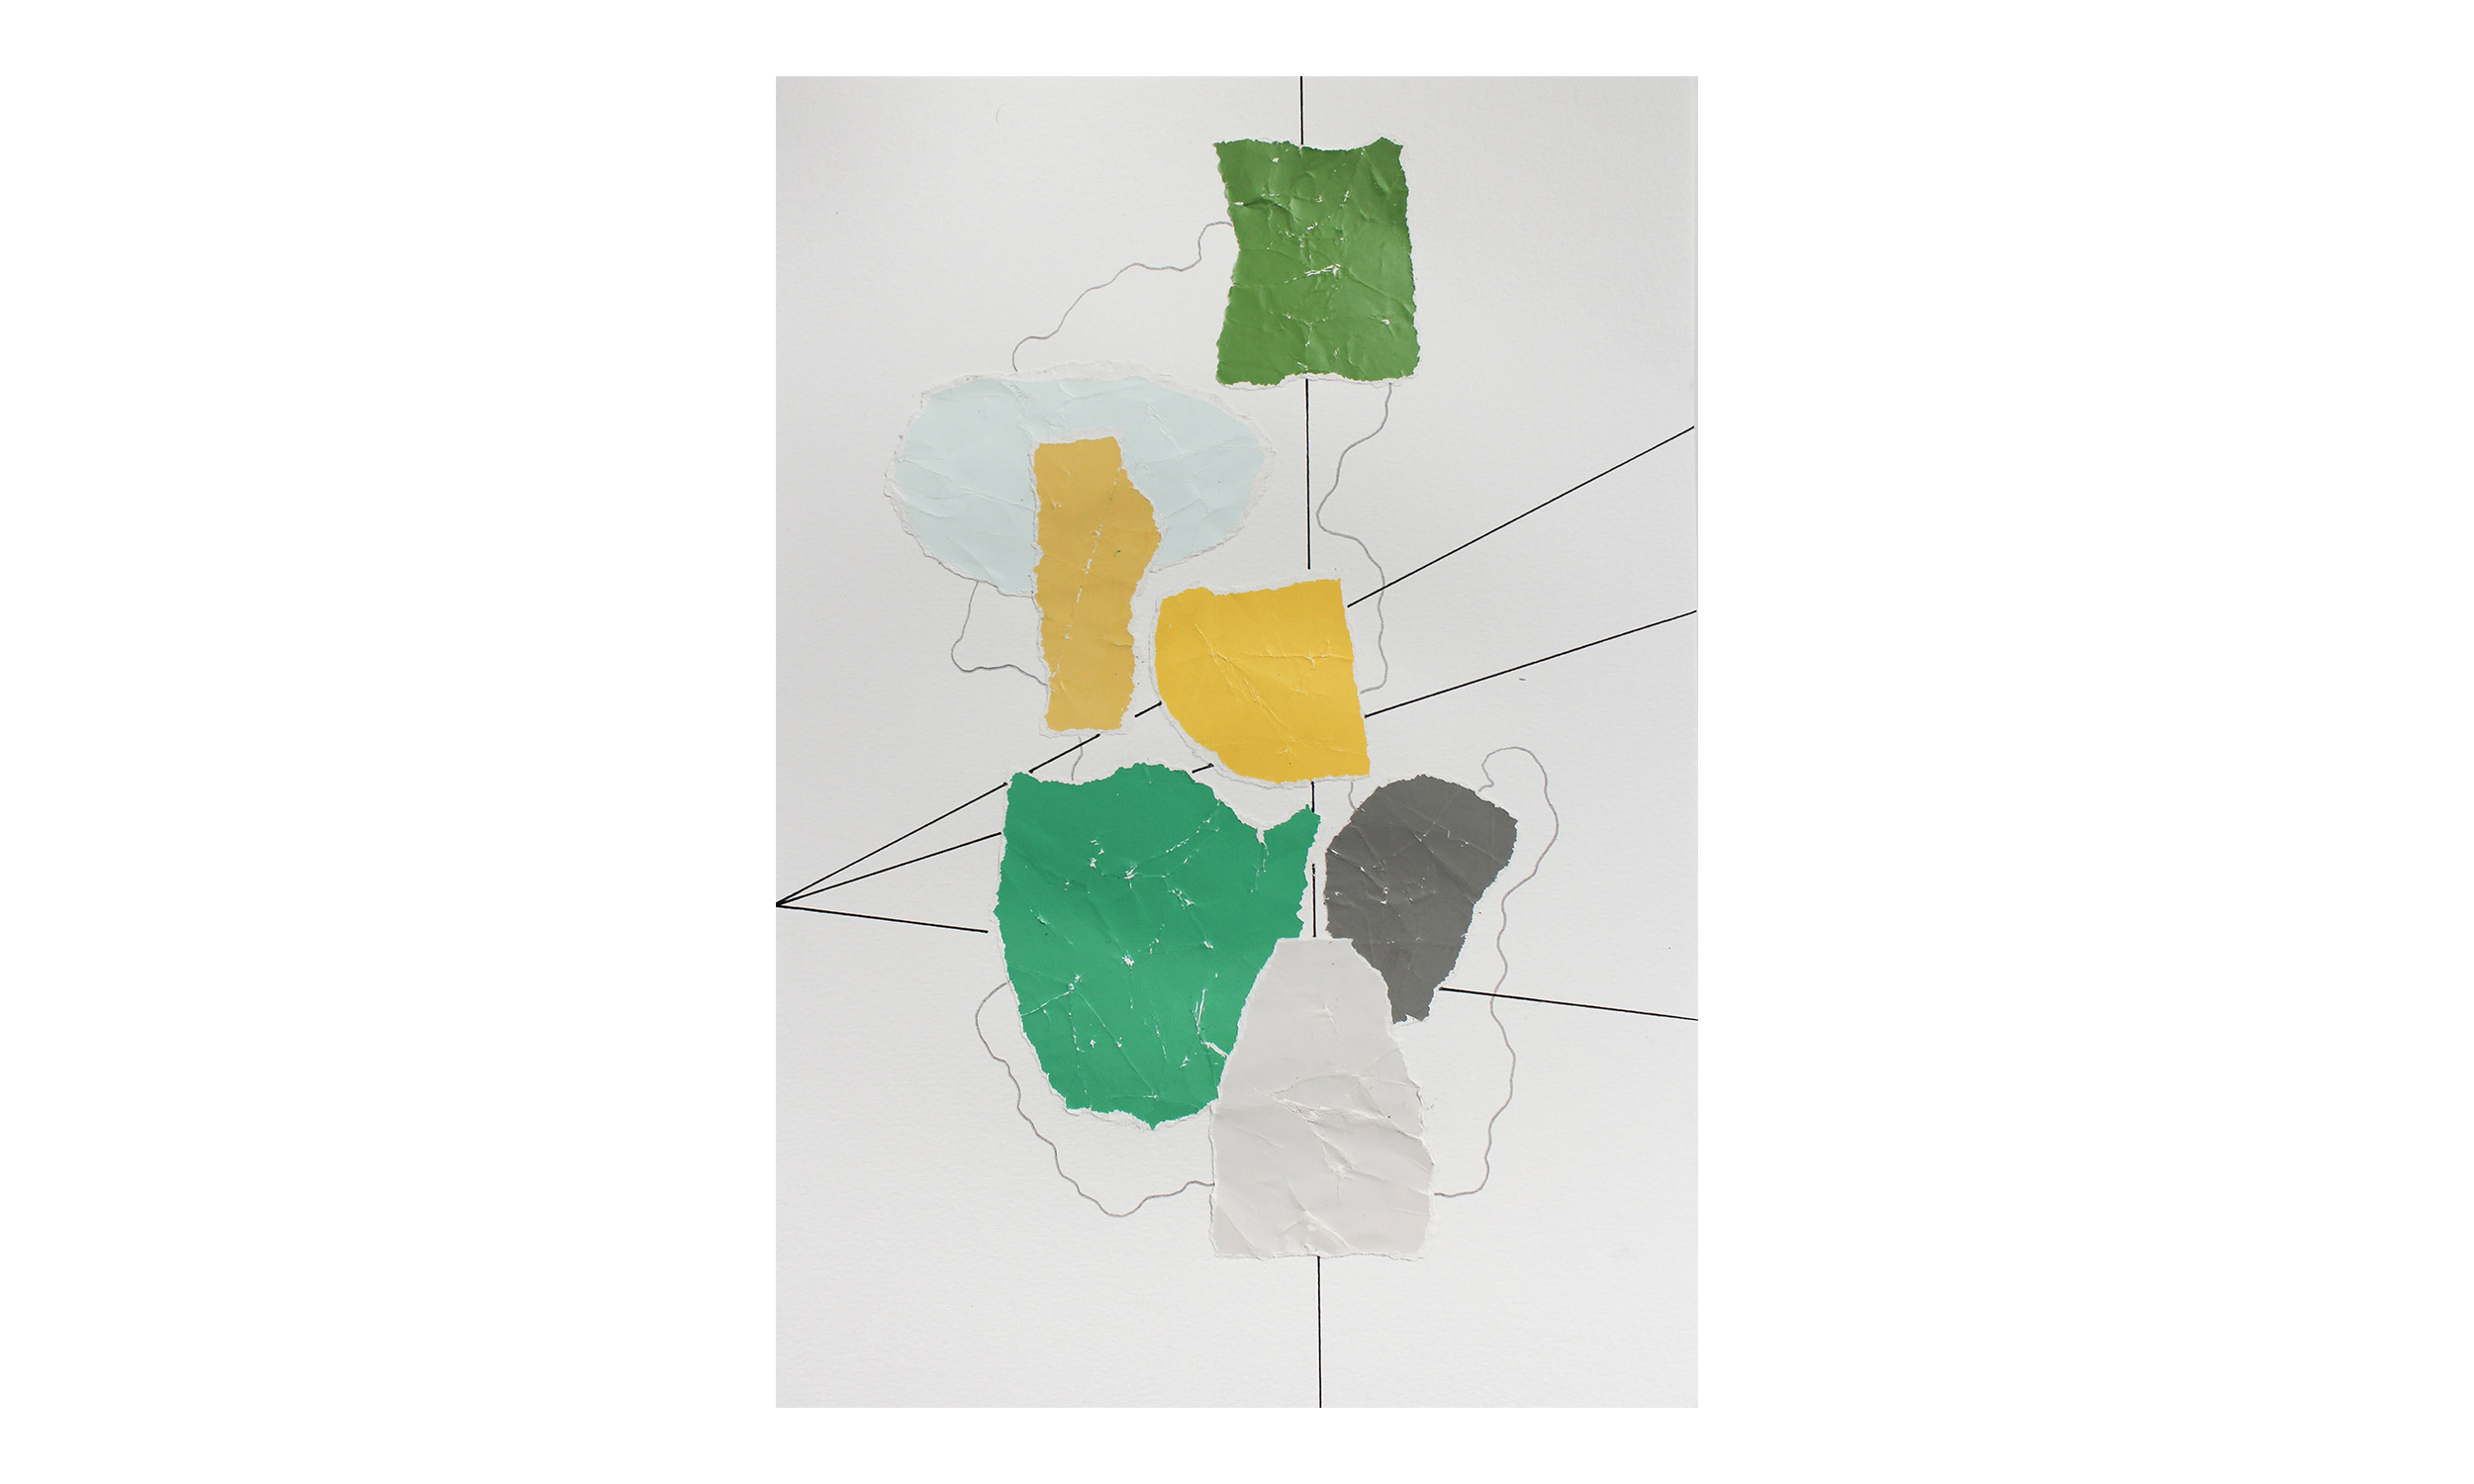 Imaginary Maps 9 , paint chips on paper, pen, pencil, 9 x 12 inches, unframed, $200    Contact us for purchase